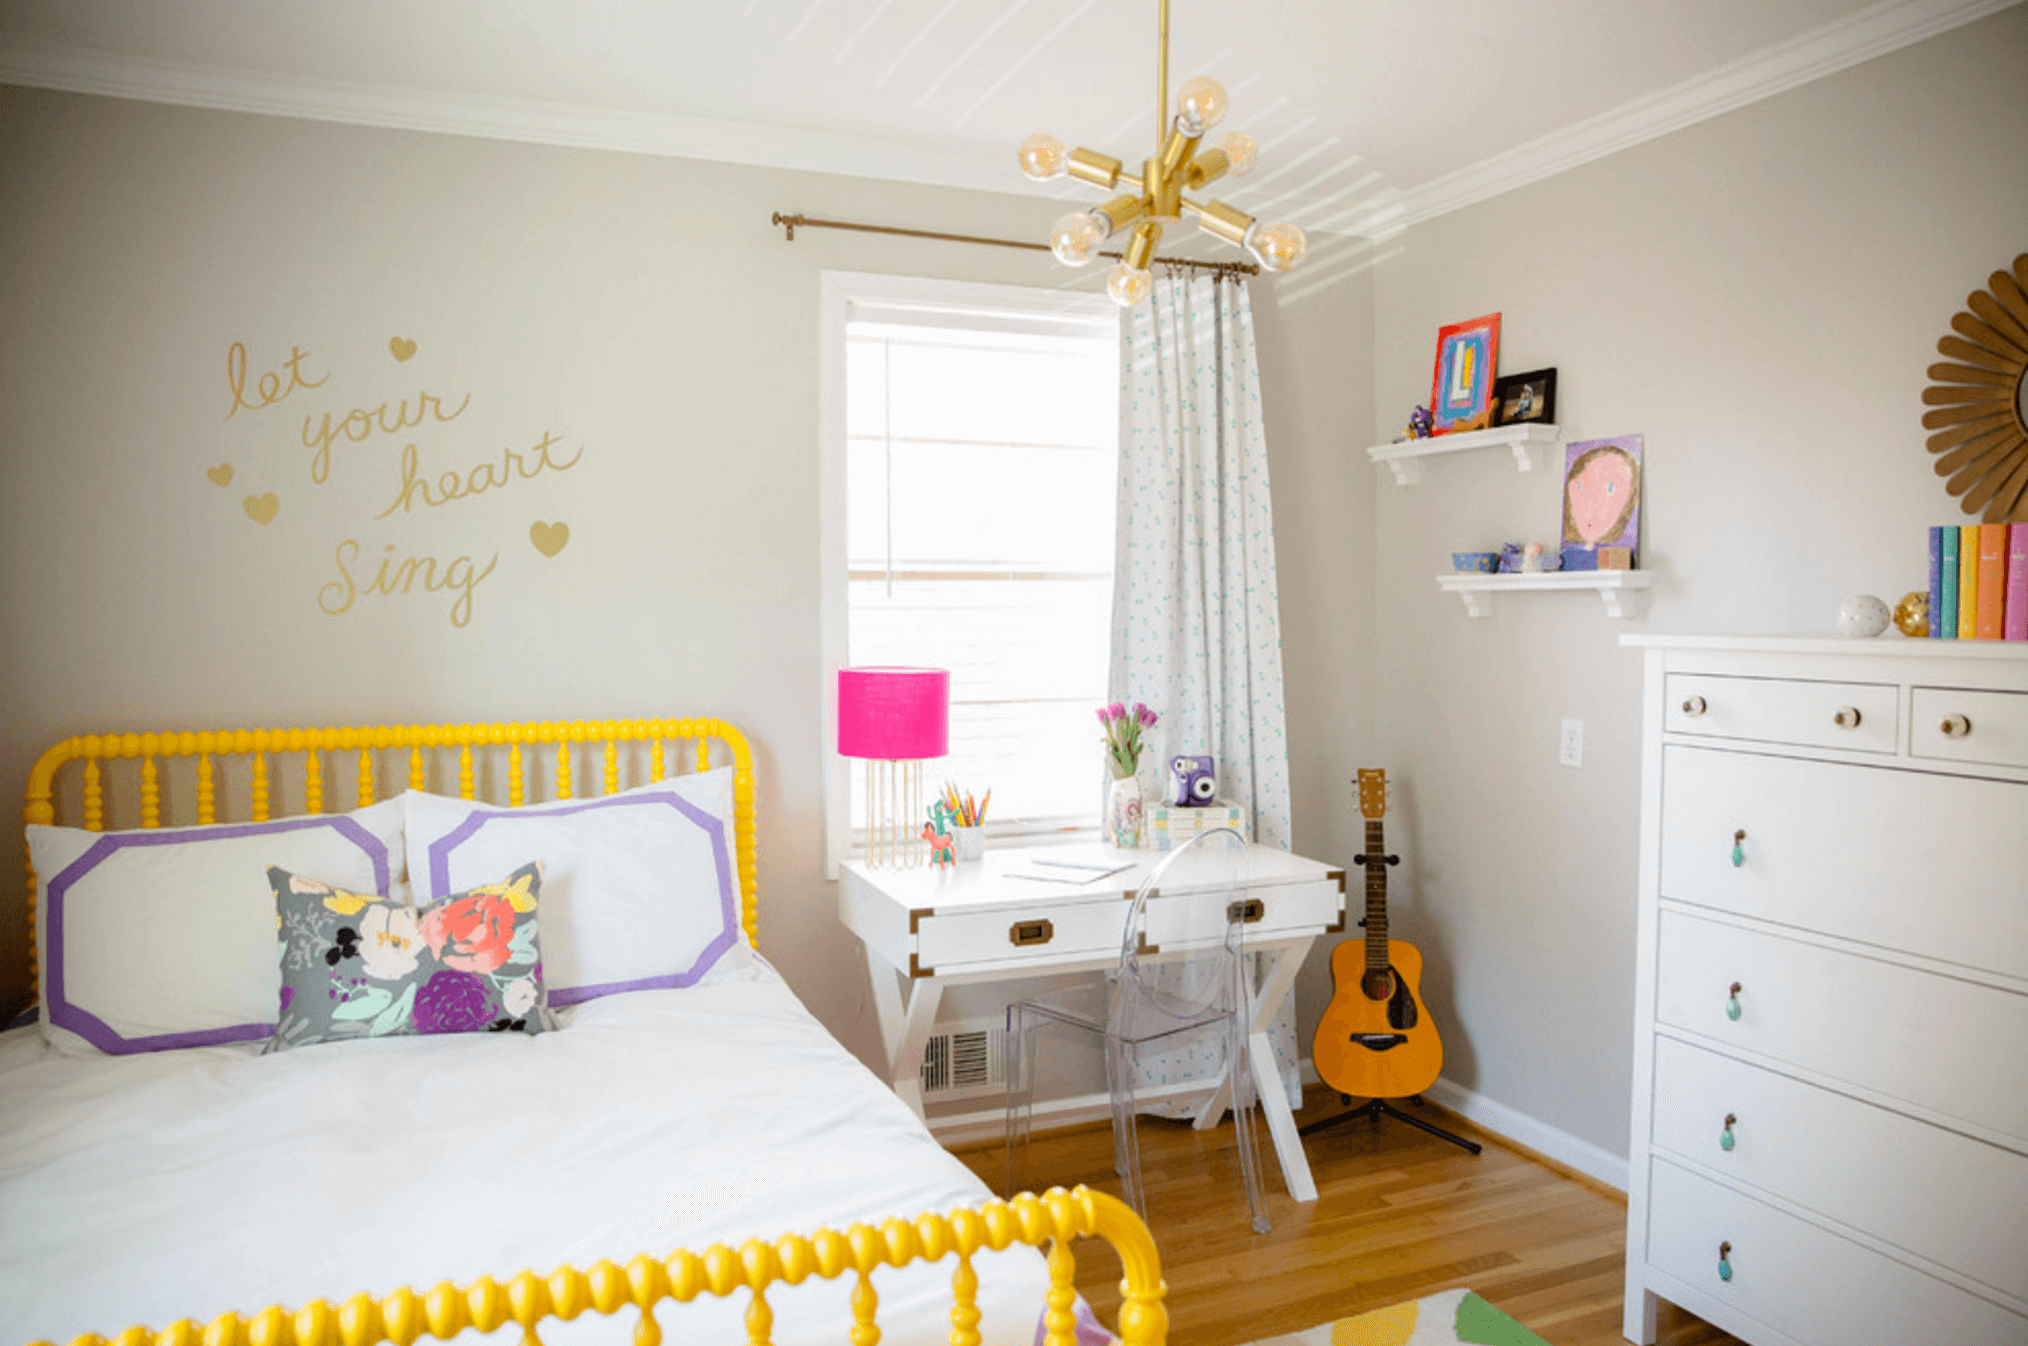 28 ideas for adding color to a kids room freshome com®kids room neutral4